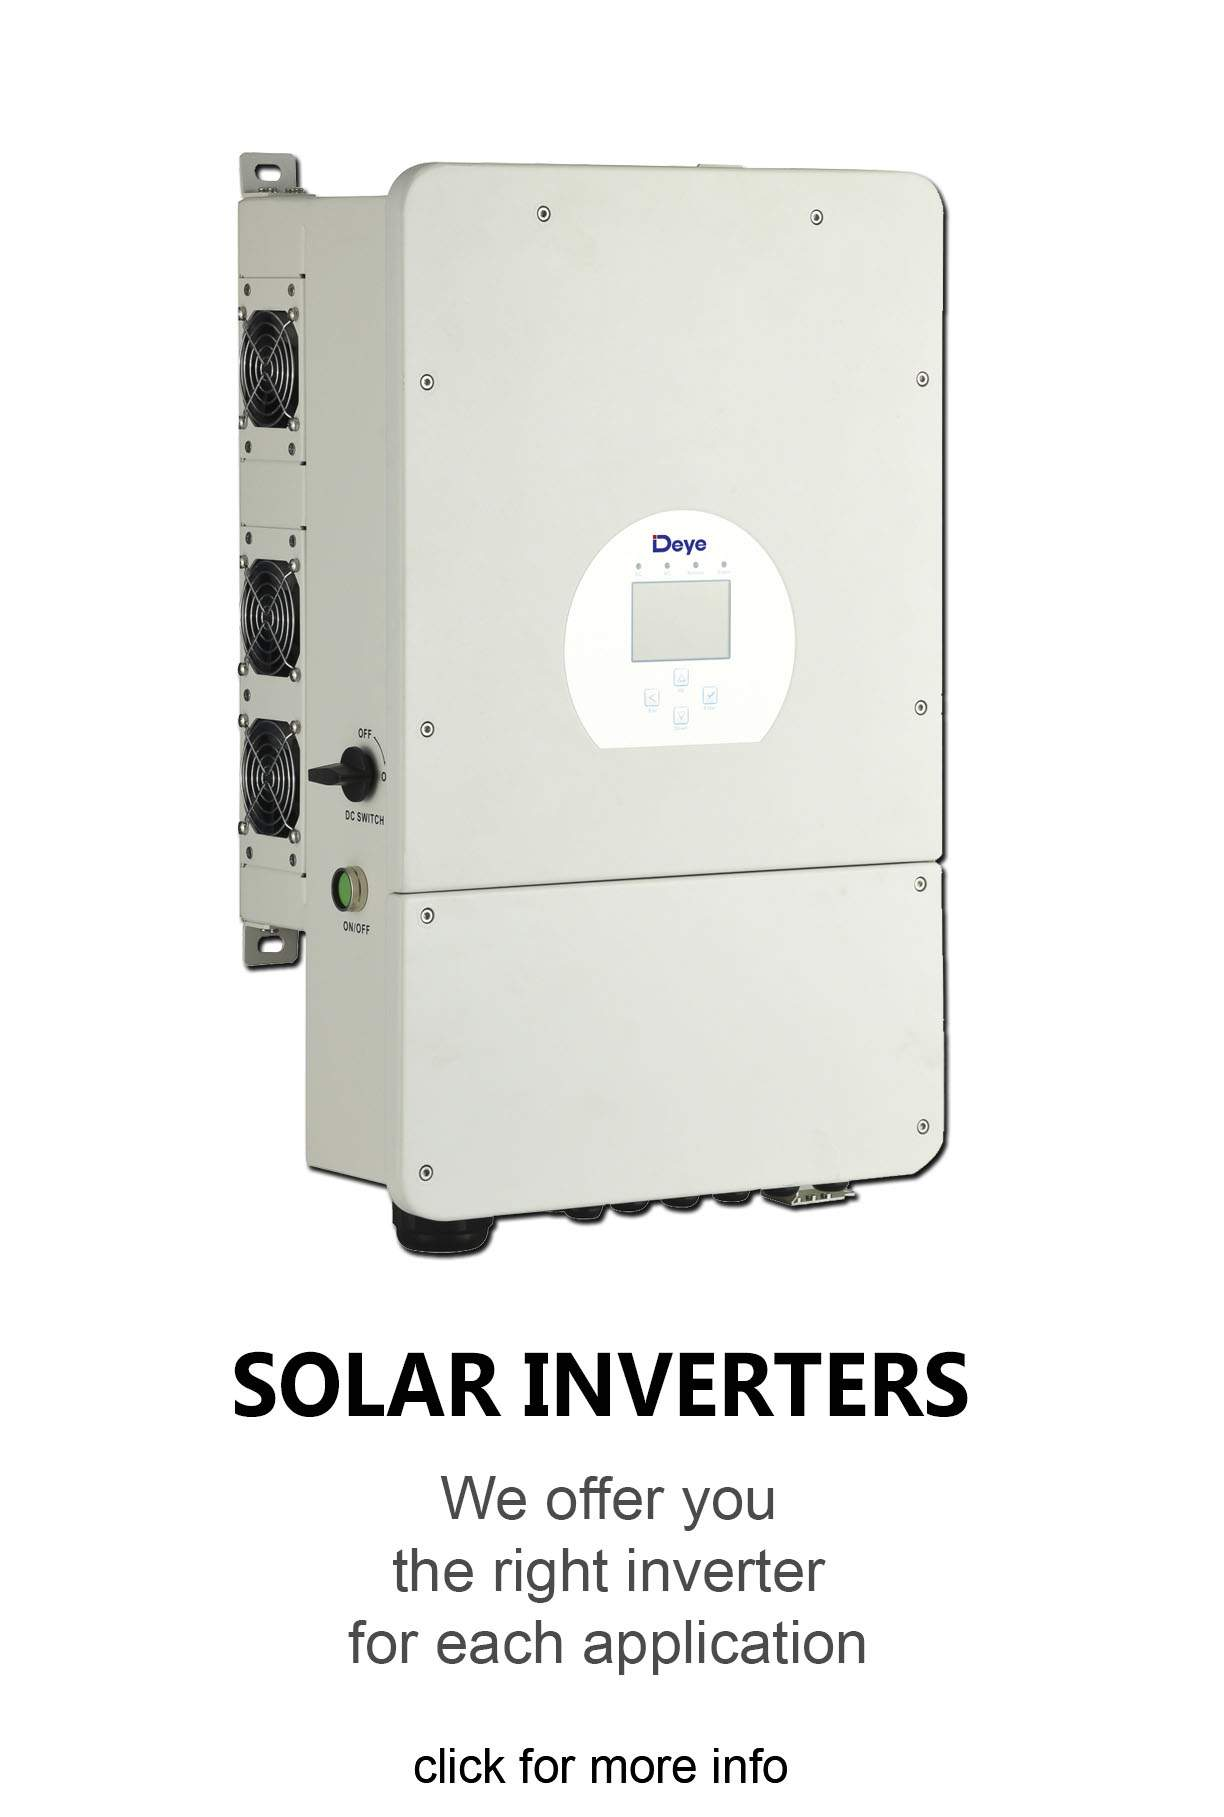 Growatt hybrid inverter , axpert king, sofar inverter and goodwe inverters for sale in Bloemfontein south africa.